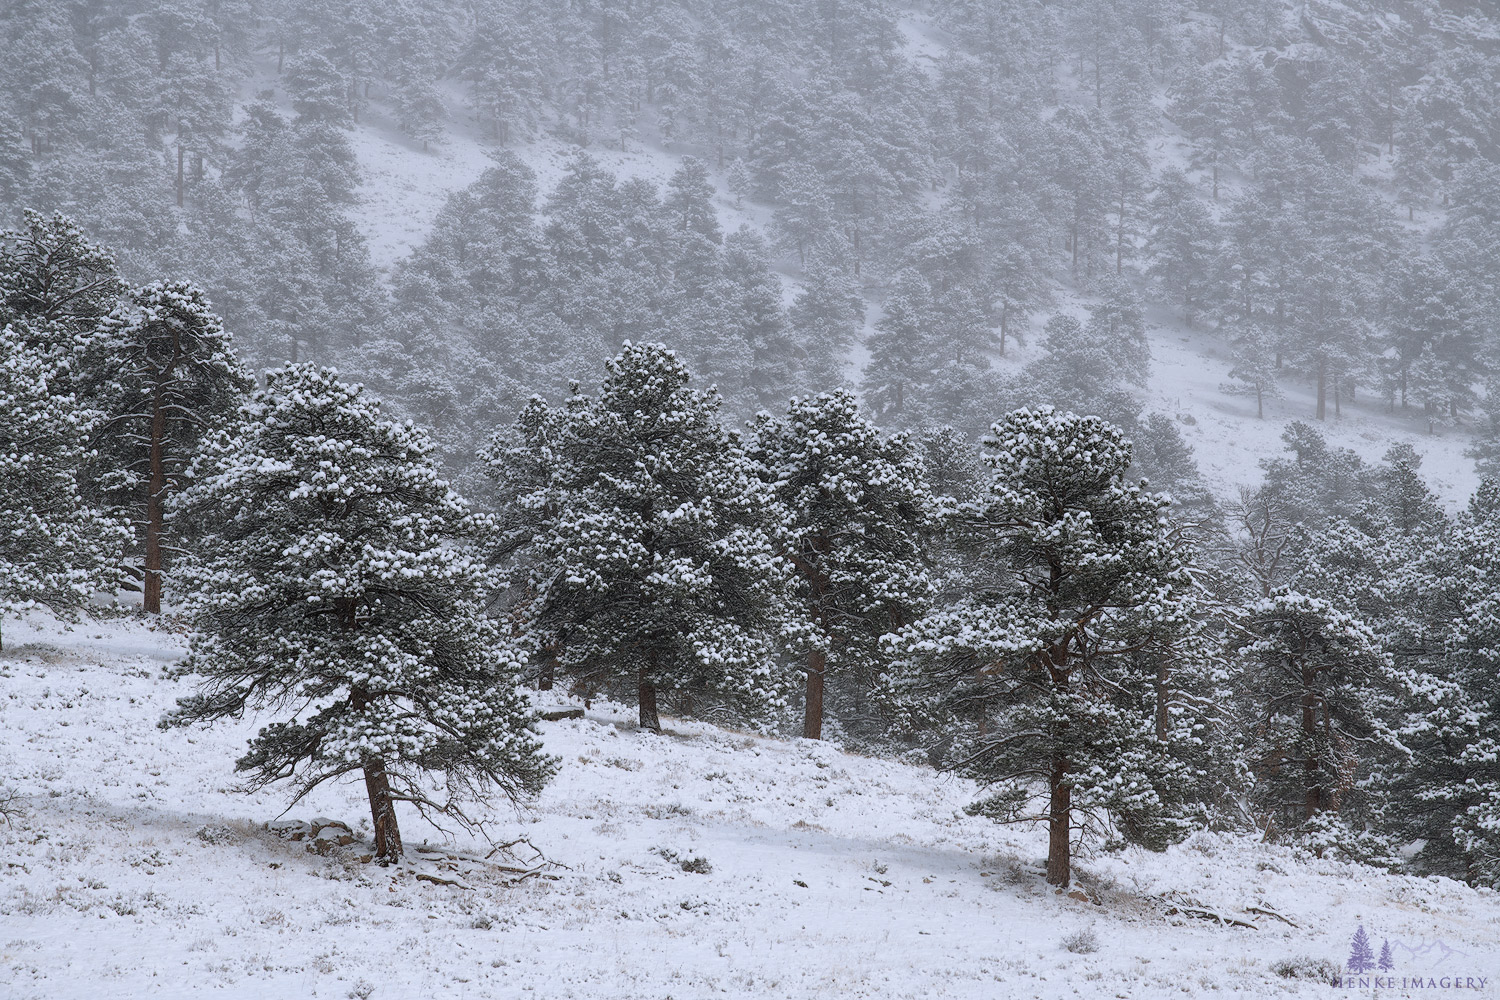 A peaceful snowy day inRocky Mountain National Park.